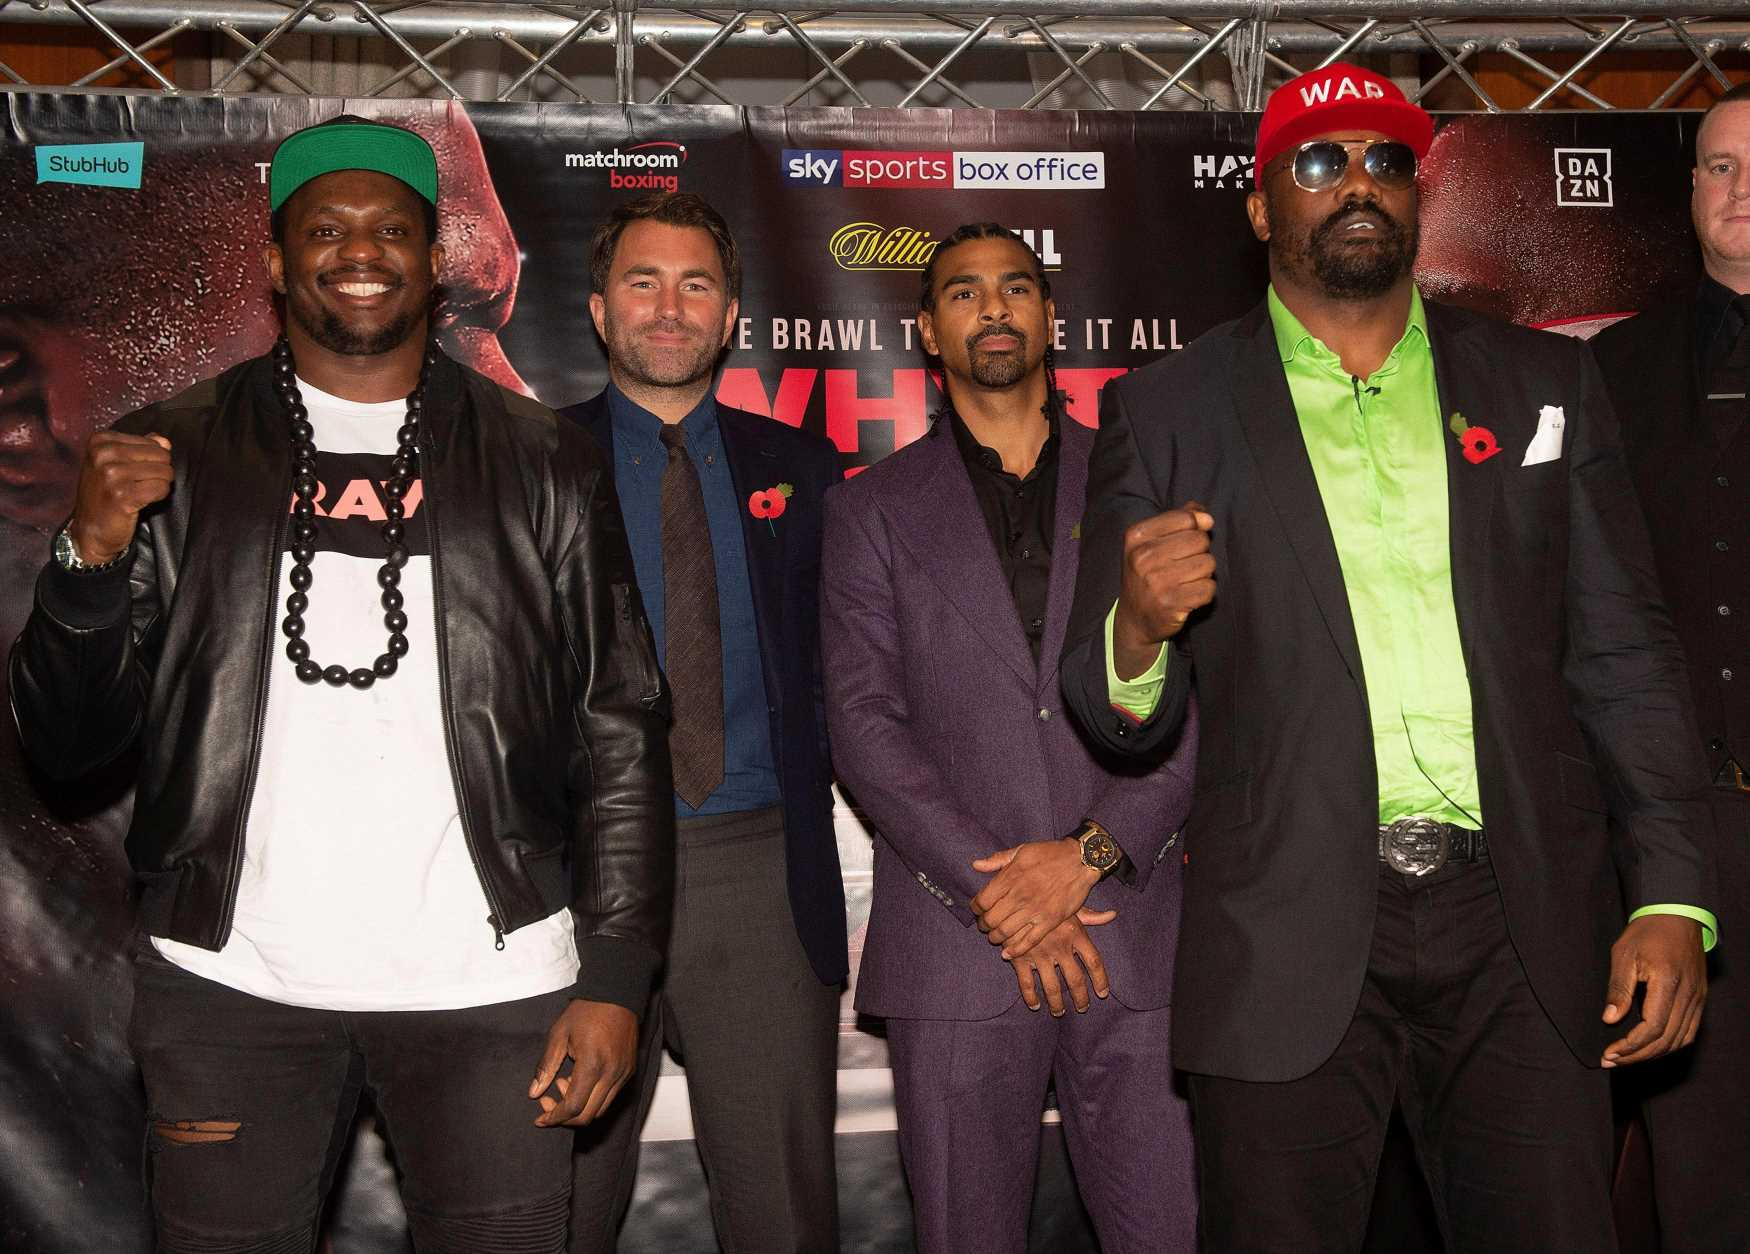 Dereck Chisora is on 'last opportunity' in boxing and set for world title fight with Anthony Joshua if he beats Dillian Whyte, says David Haye